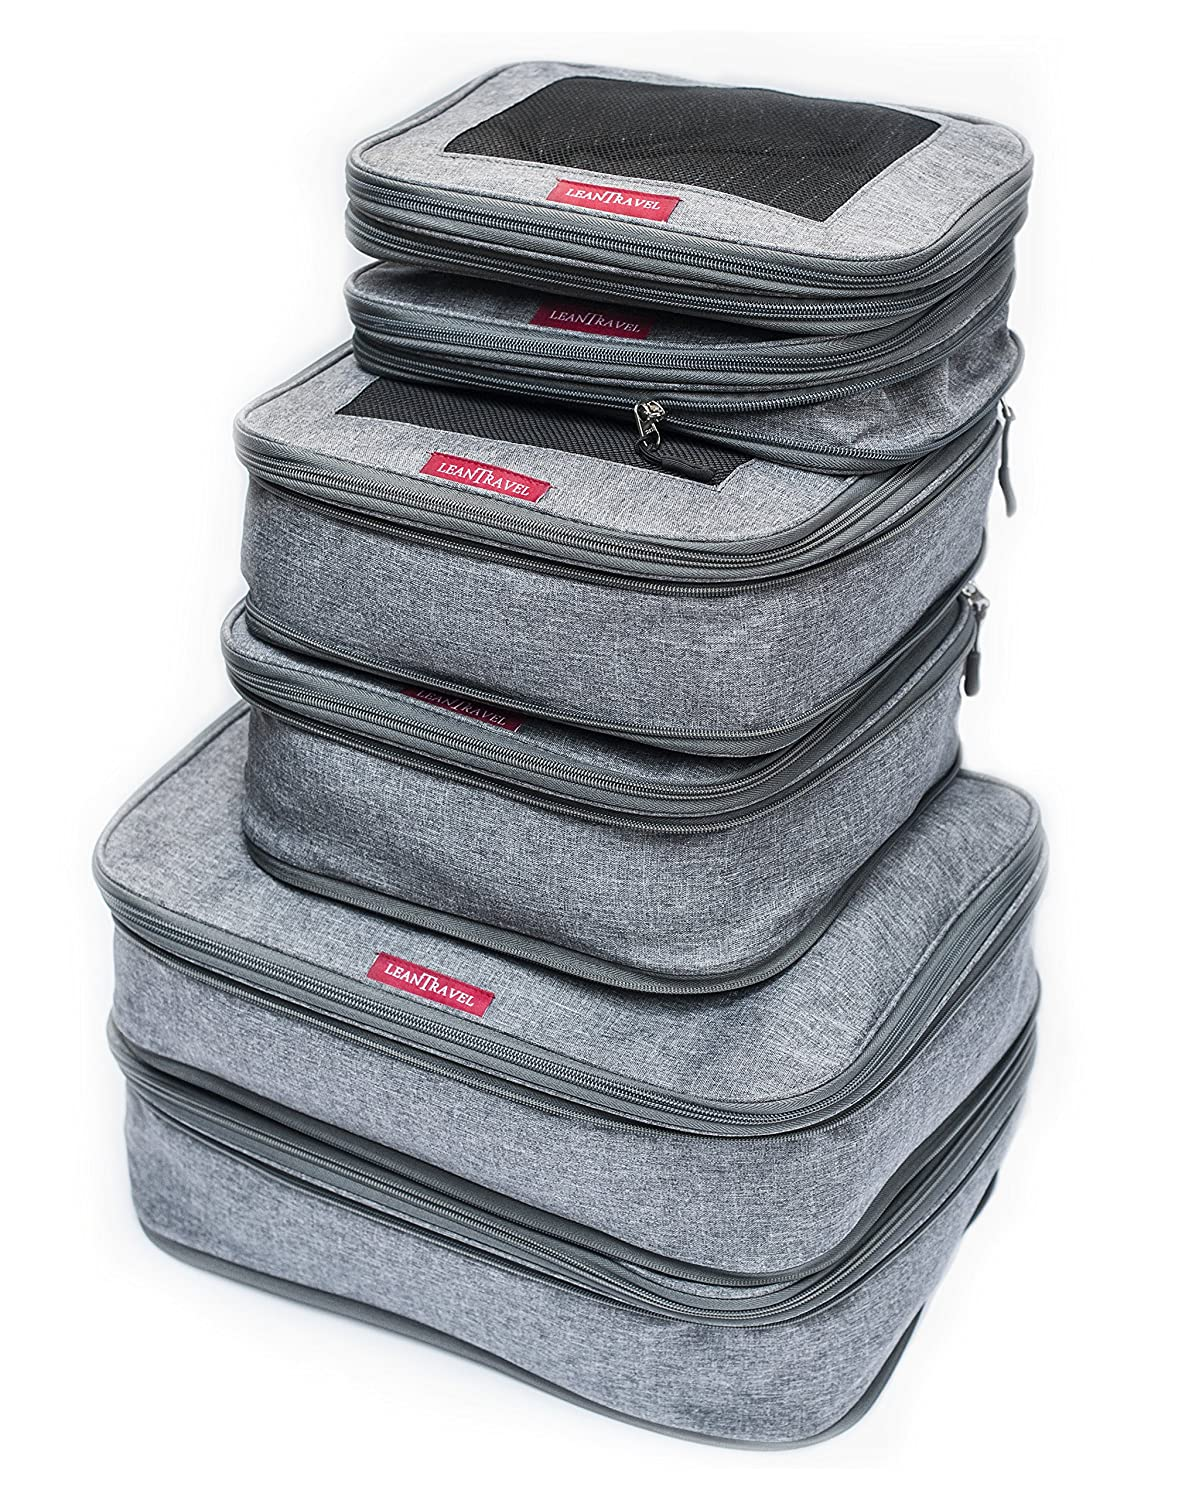 LeanTravel Compression Packing Cubes Luggage Organizers for Travel with Double Zipper - Set of 6 - Color Grey